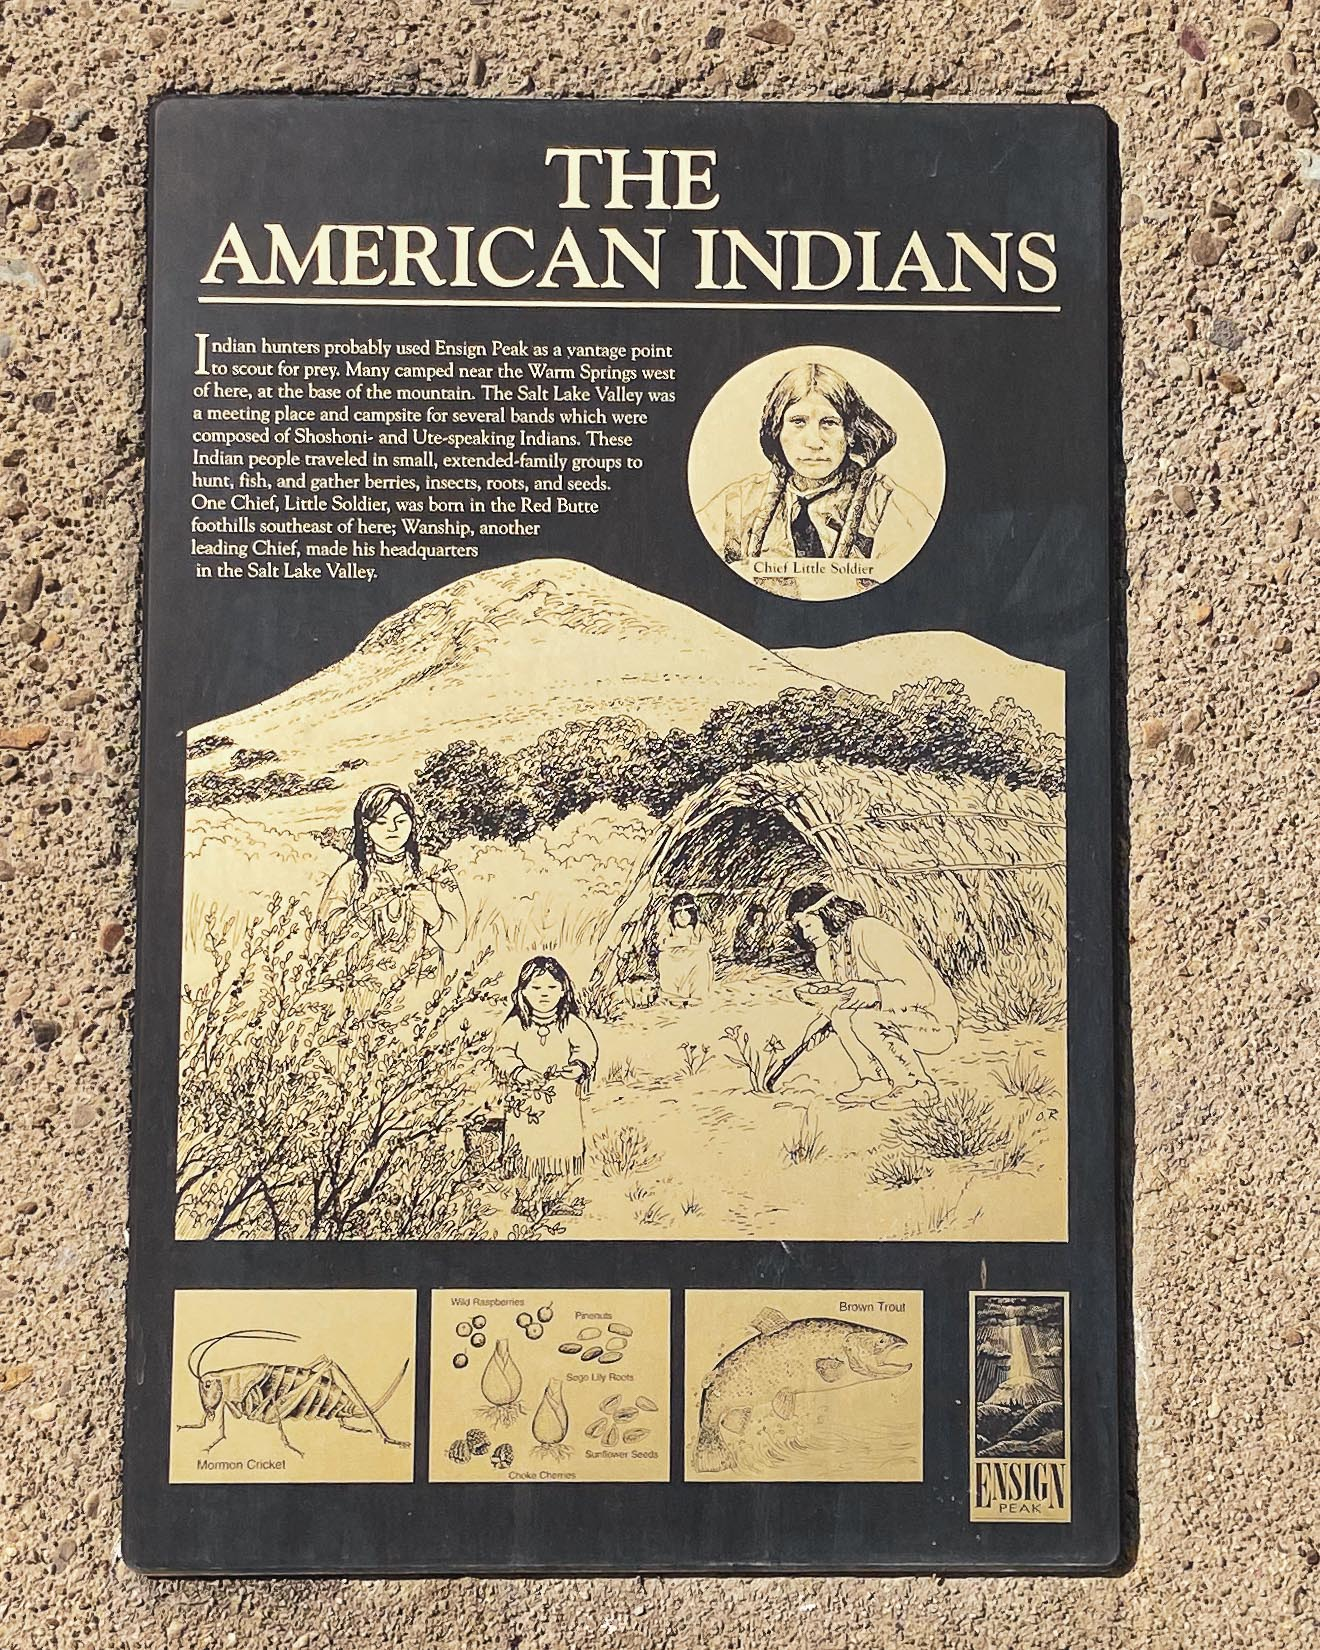 """Problematic text on this hike plaque reads: """"...Indian hunters probably used Ensign Peak as a vantage point to scout for prey..."""""""